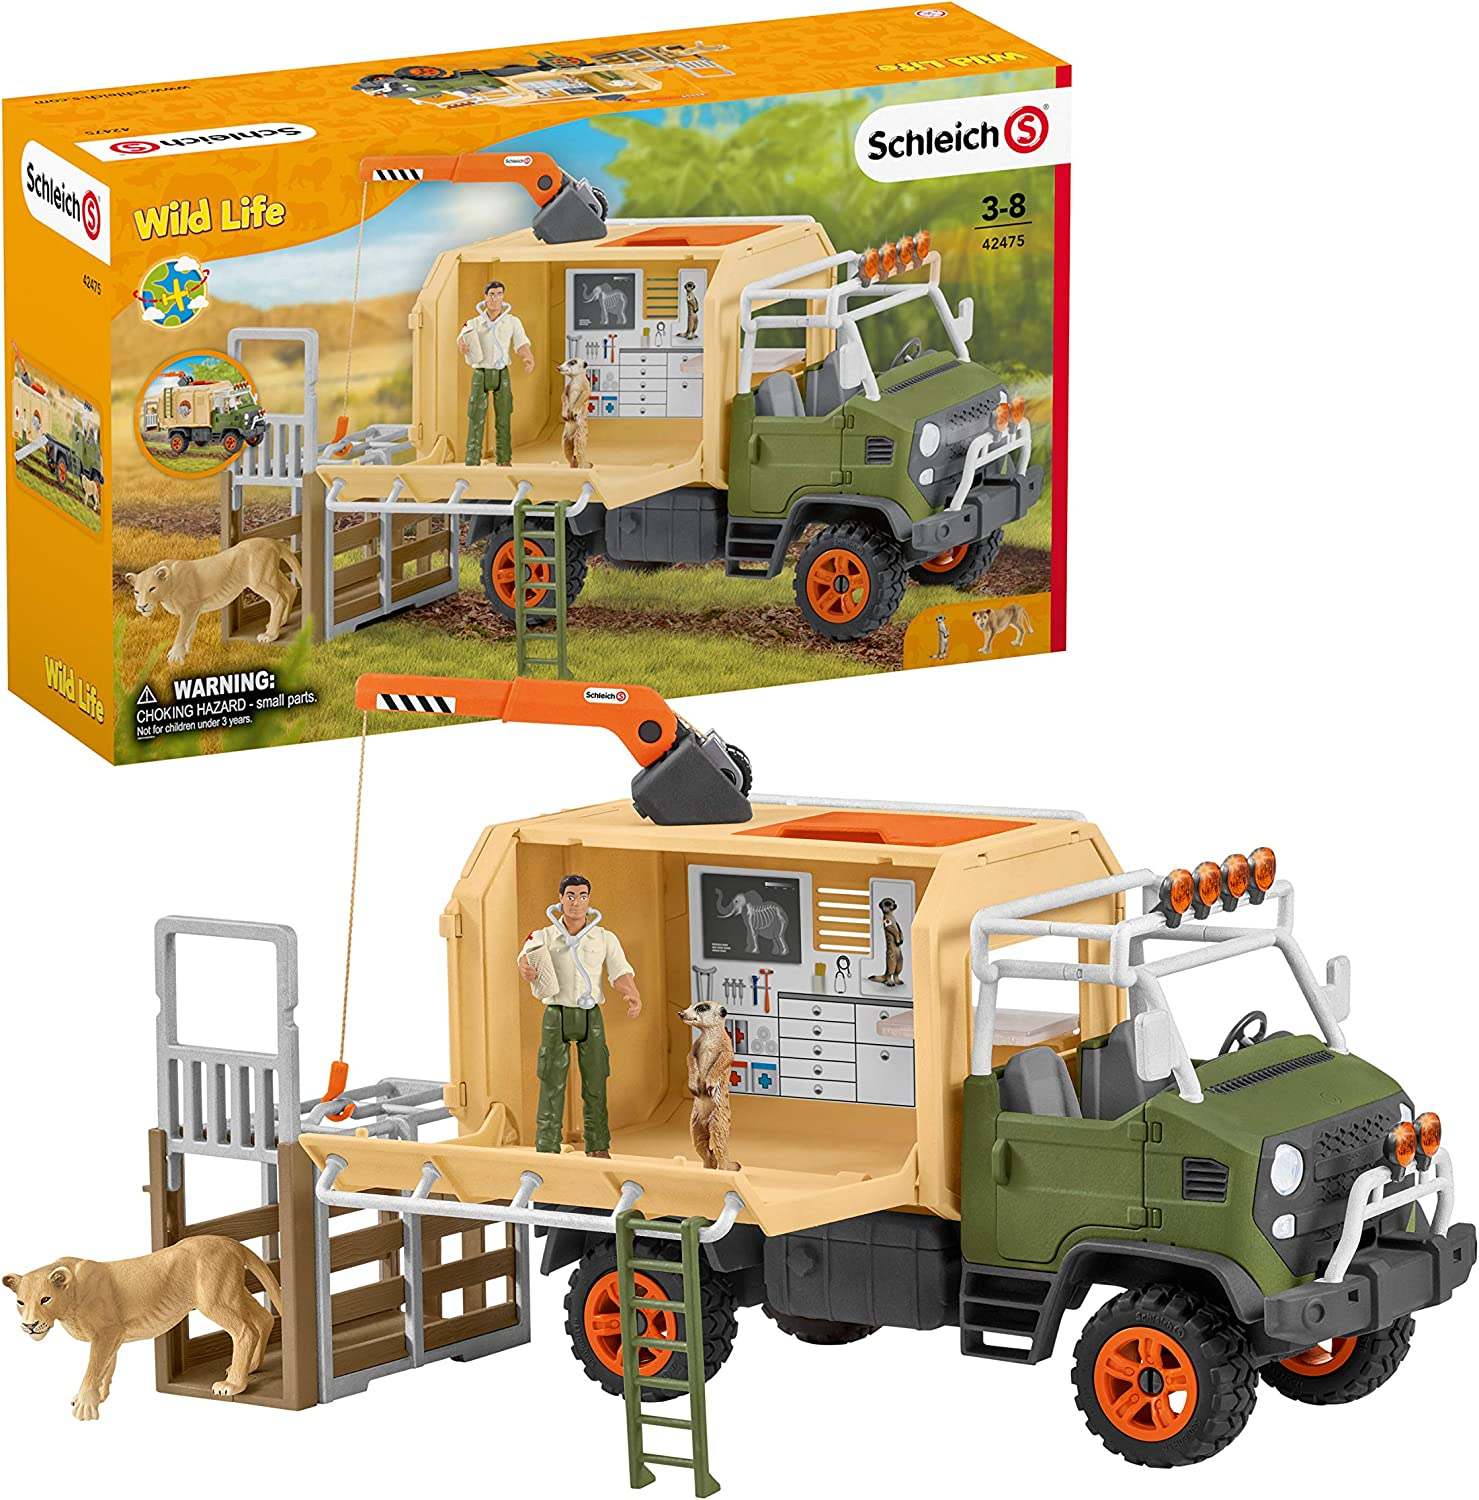 Schleich Wild Life 10-piece Animal Rescue Toy Truck with Ranger and Animals Playset for Kids Ages 3-8